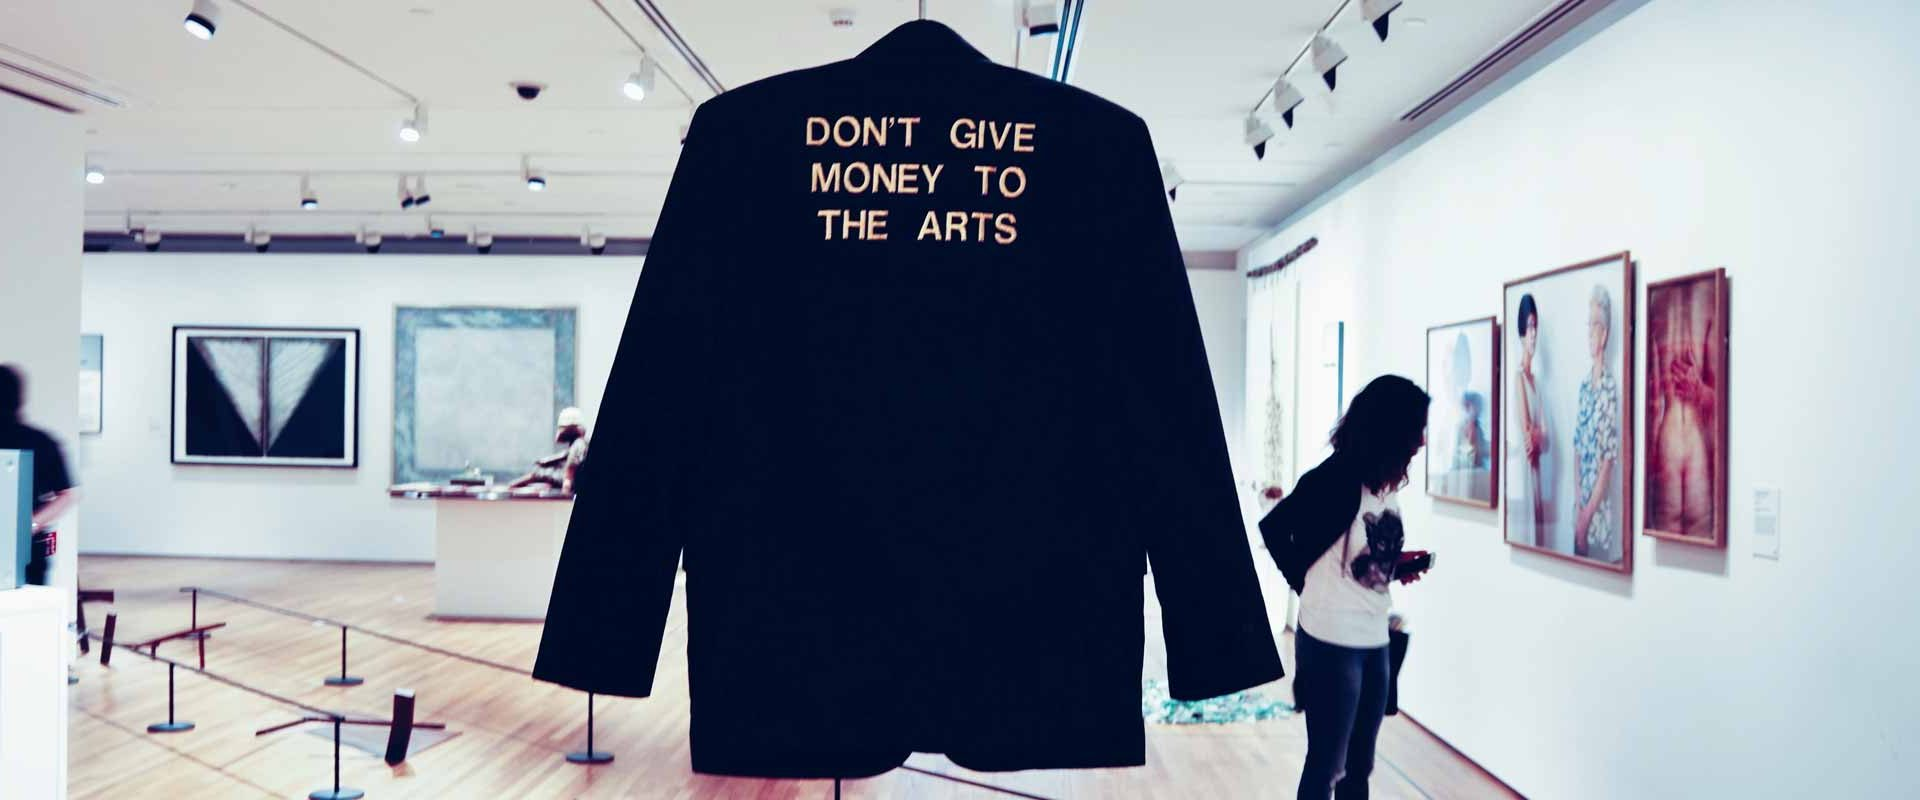 Should we pay artists?